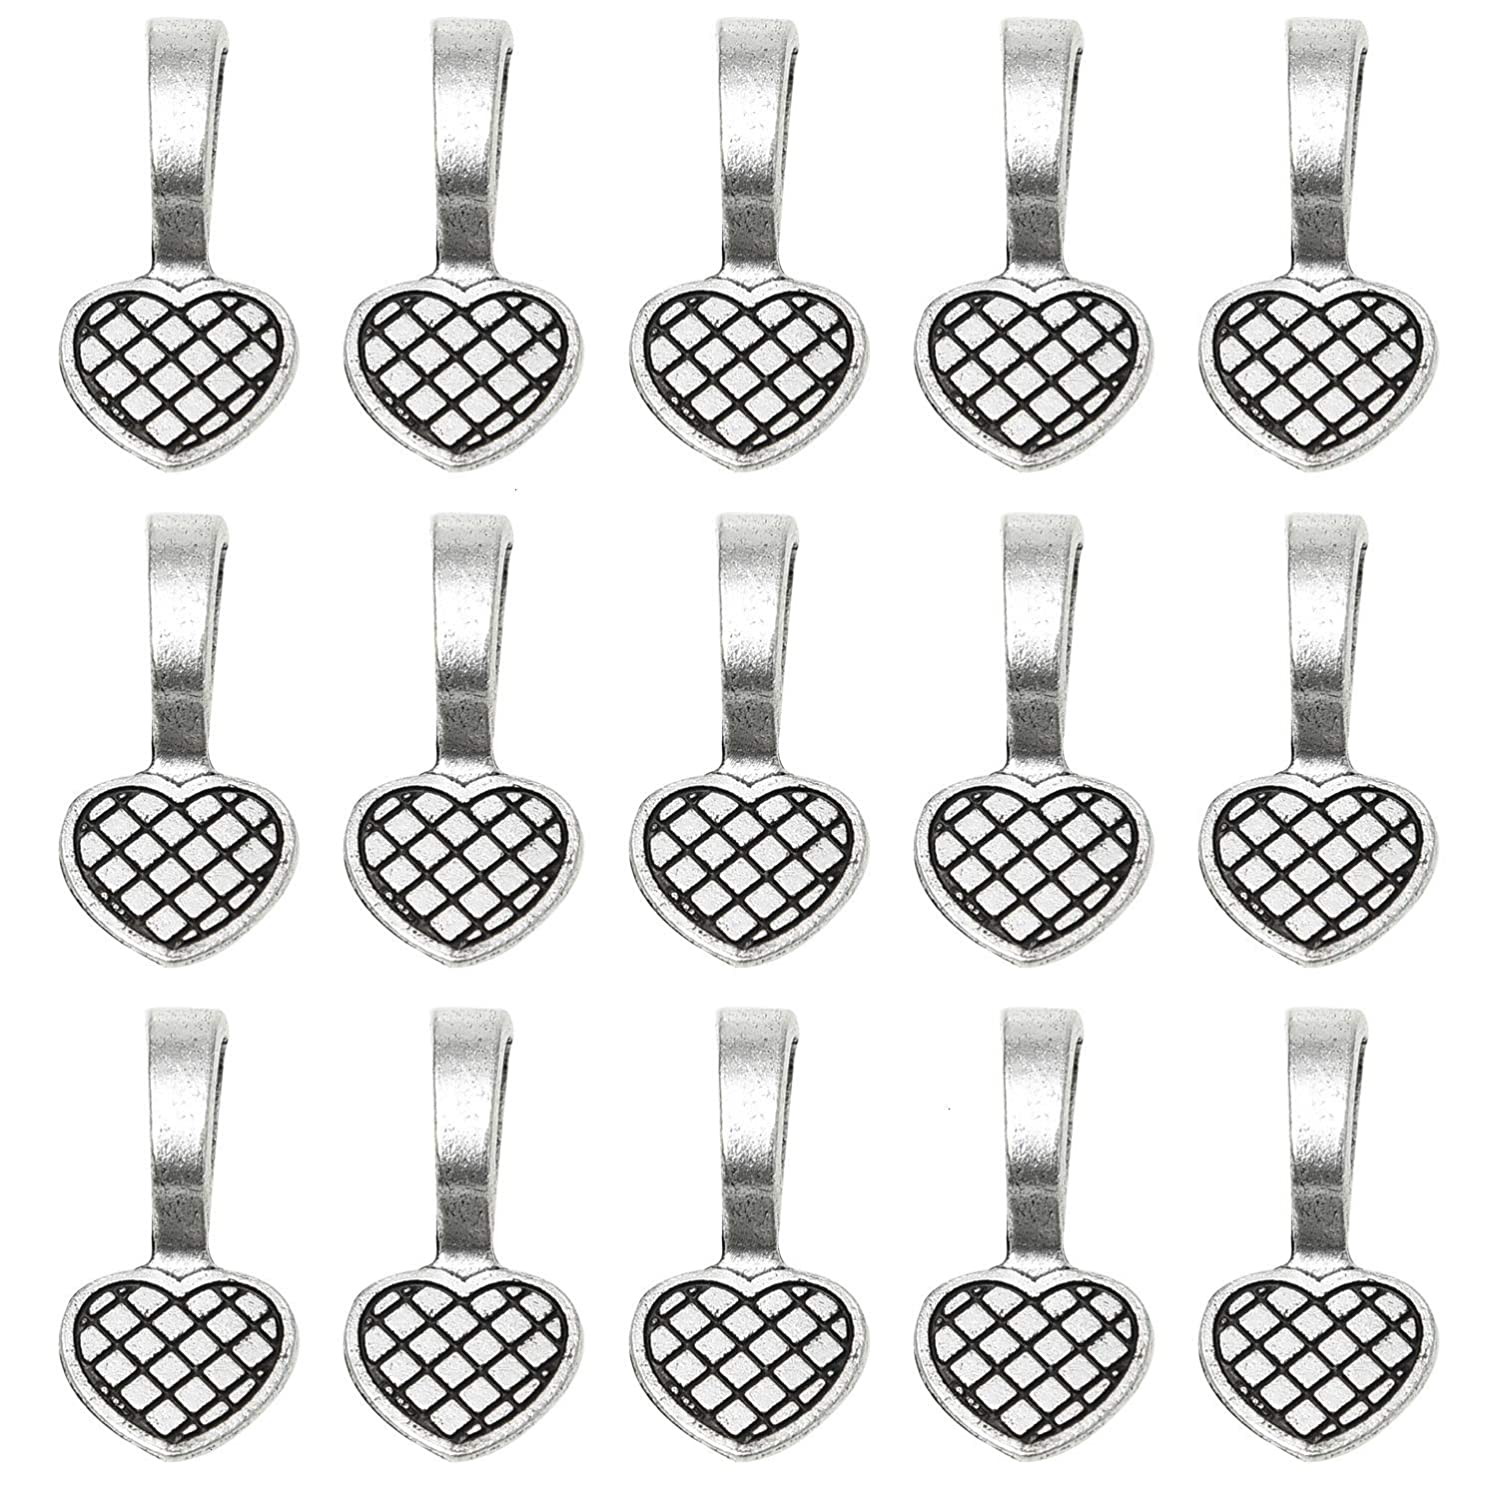 Monrocco 100 Pcs Antique Silver Glue on Heart Bails Jewelry Scrabble Glue On Earring Bails Glass Tiles Pendants for Jewelry Making